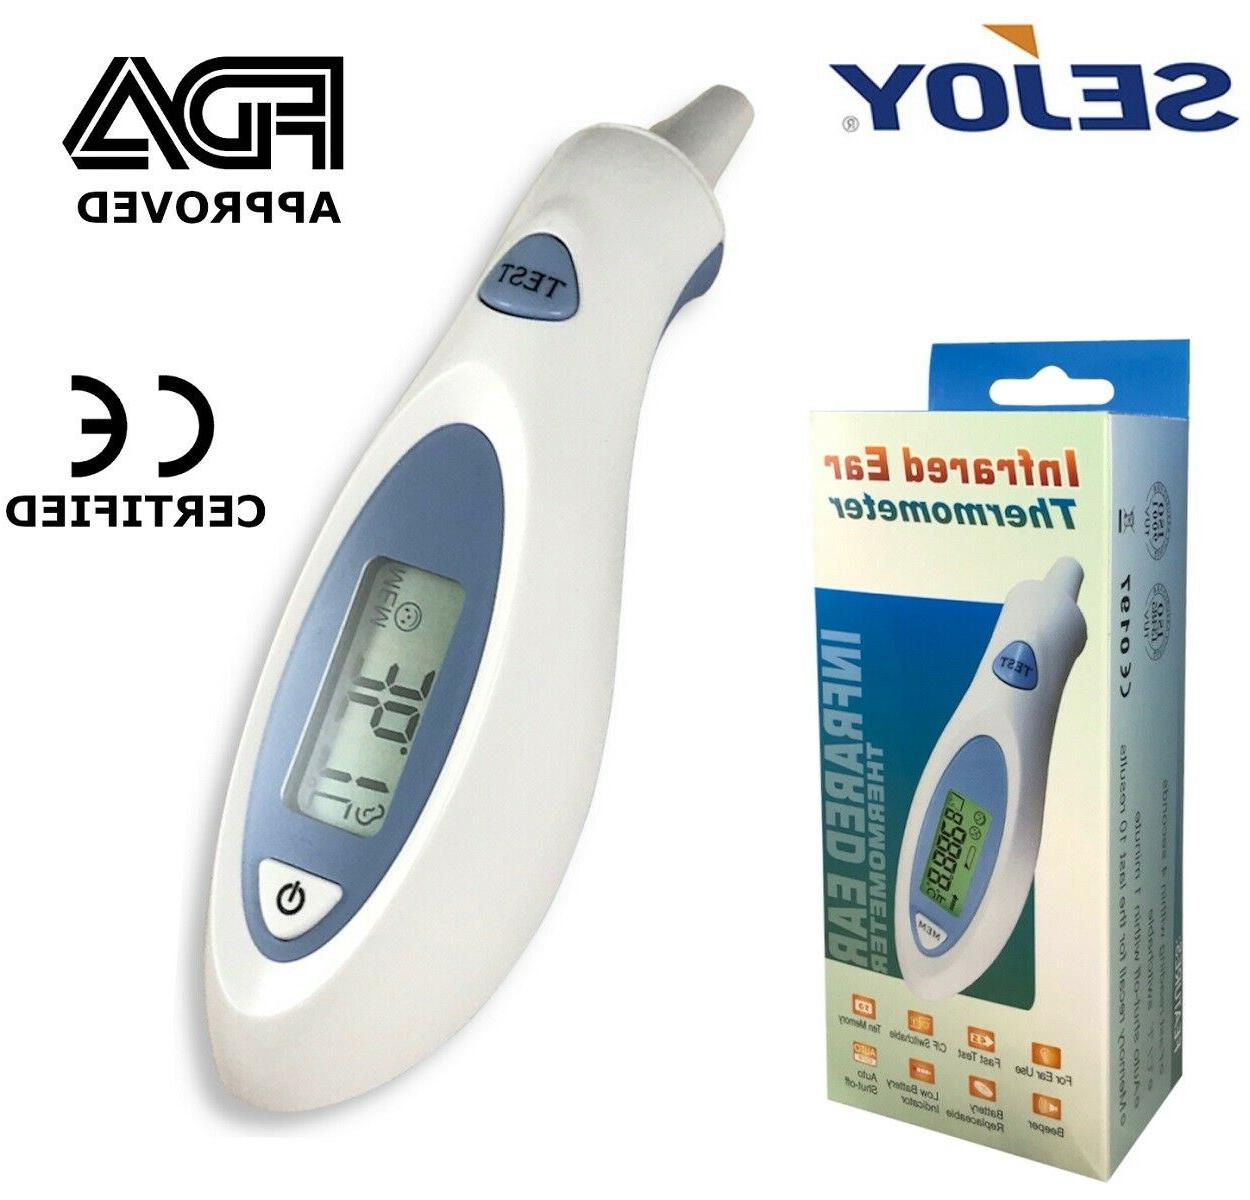 Ear Thermometer - Suitable